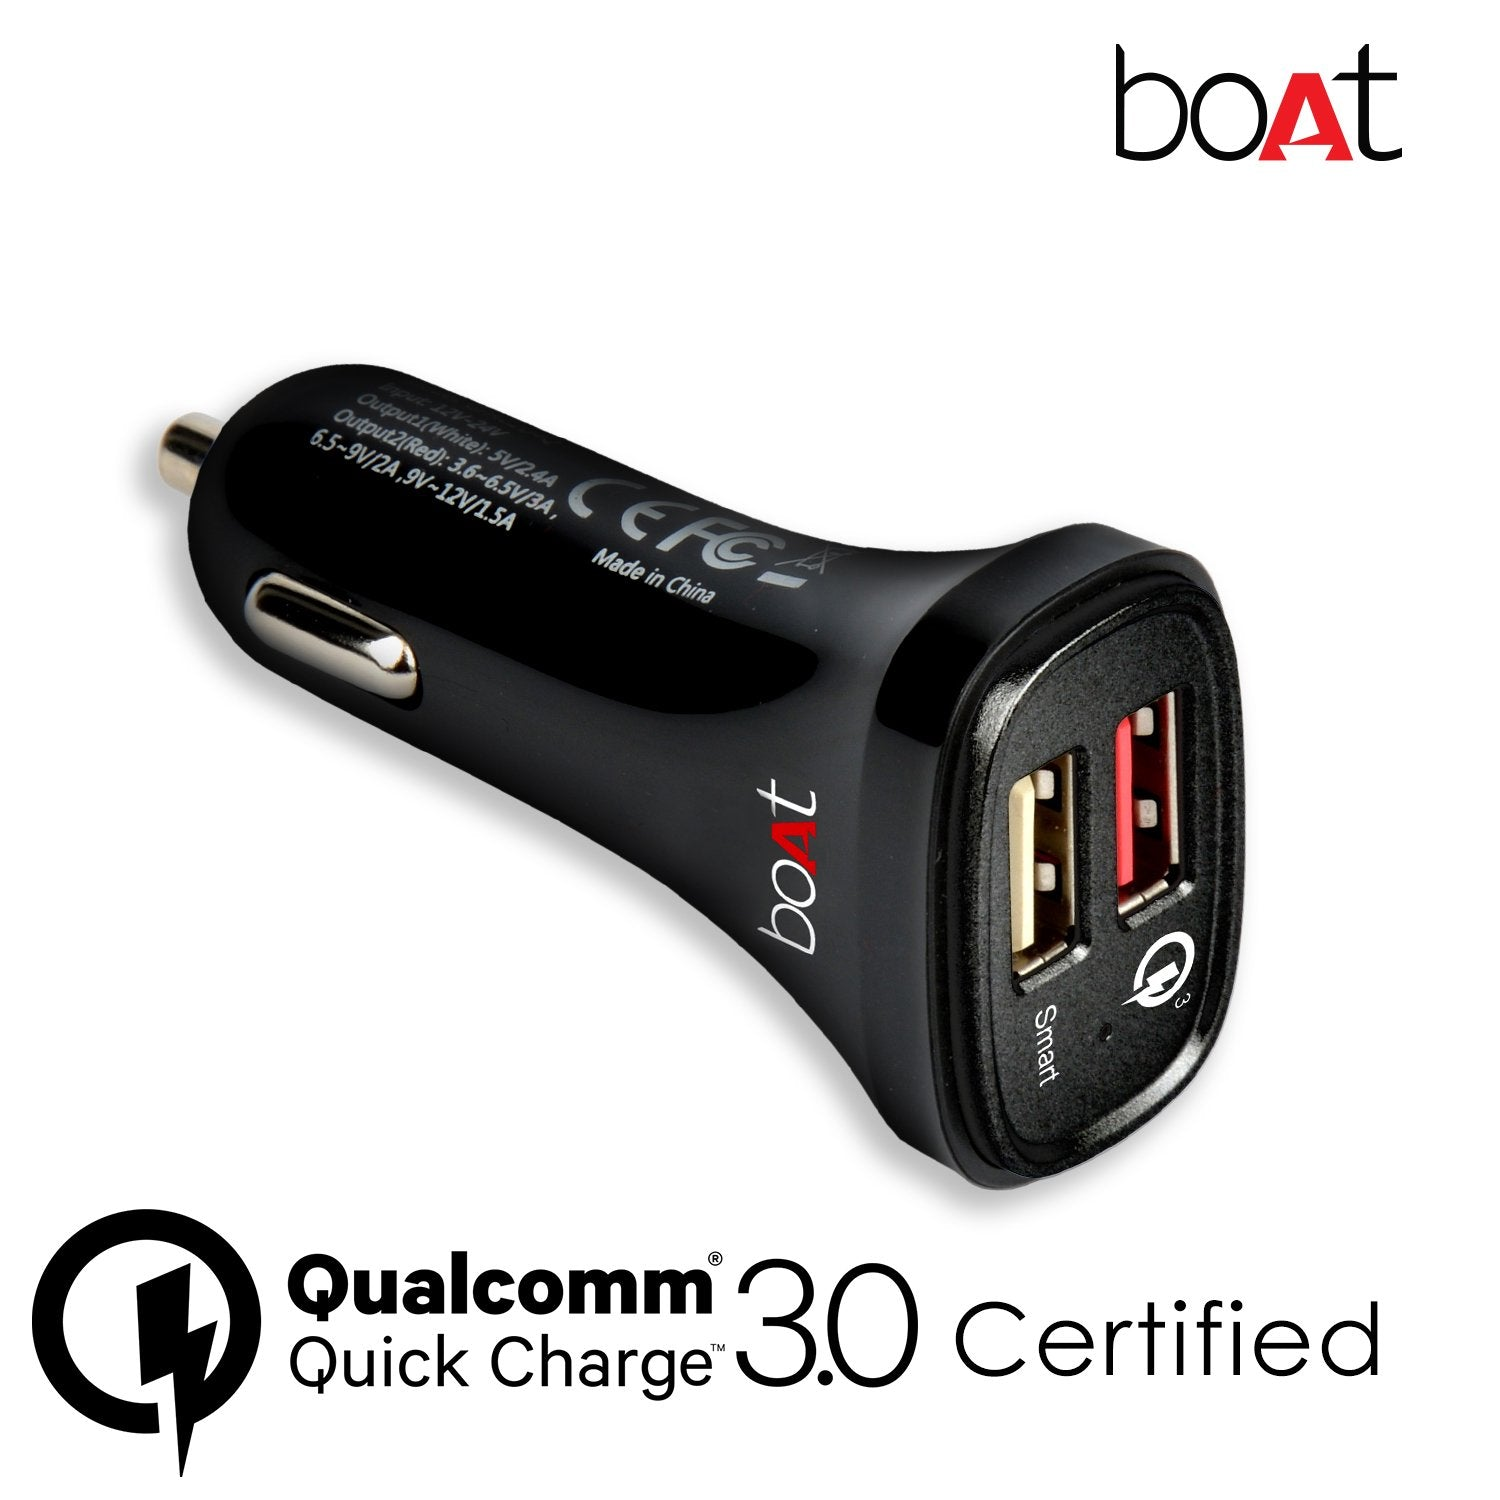 Boat Dual Port Rapid Car Charge With Quick Charge 3.0 get best offers deals free and coupons online at buythevalue.in